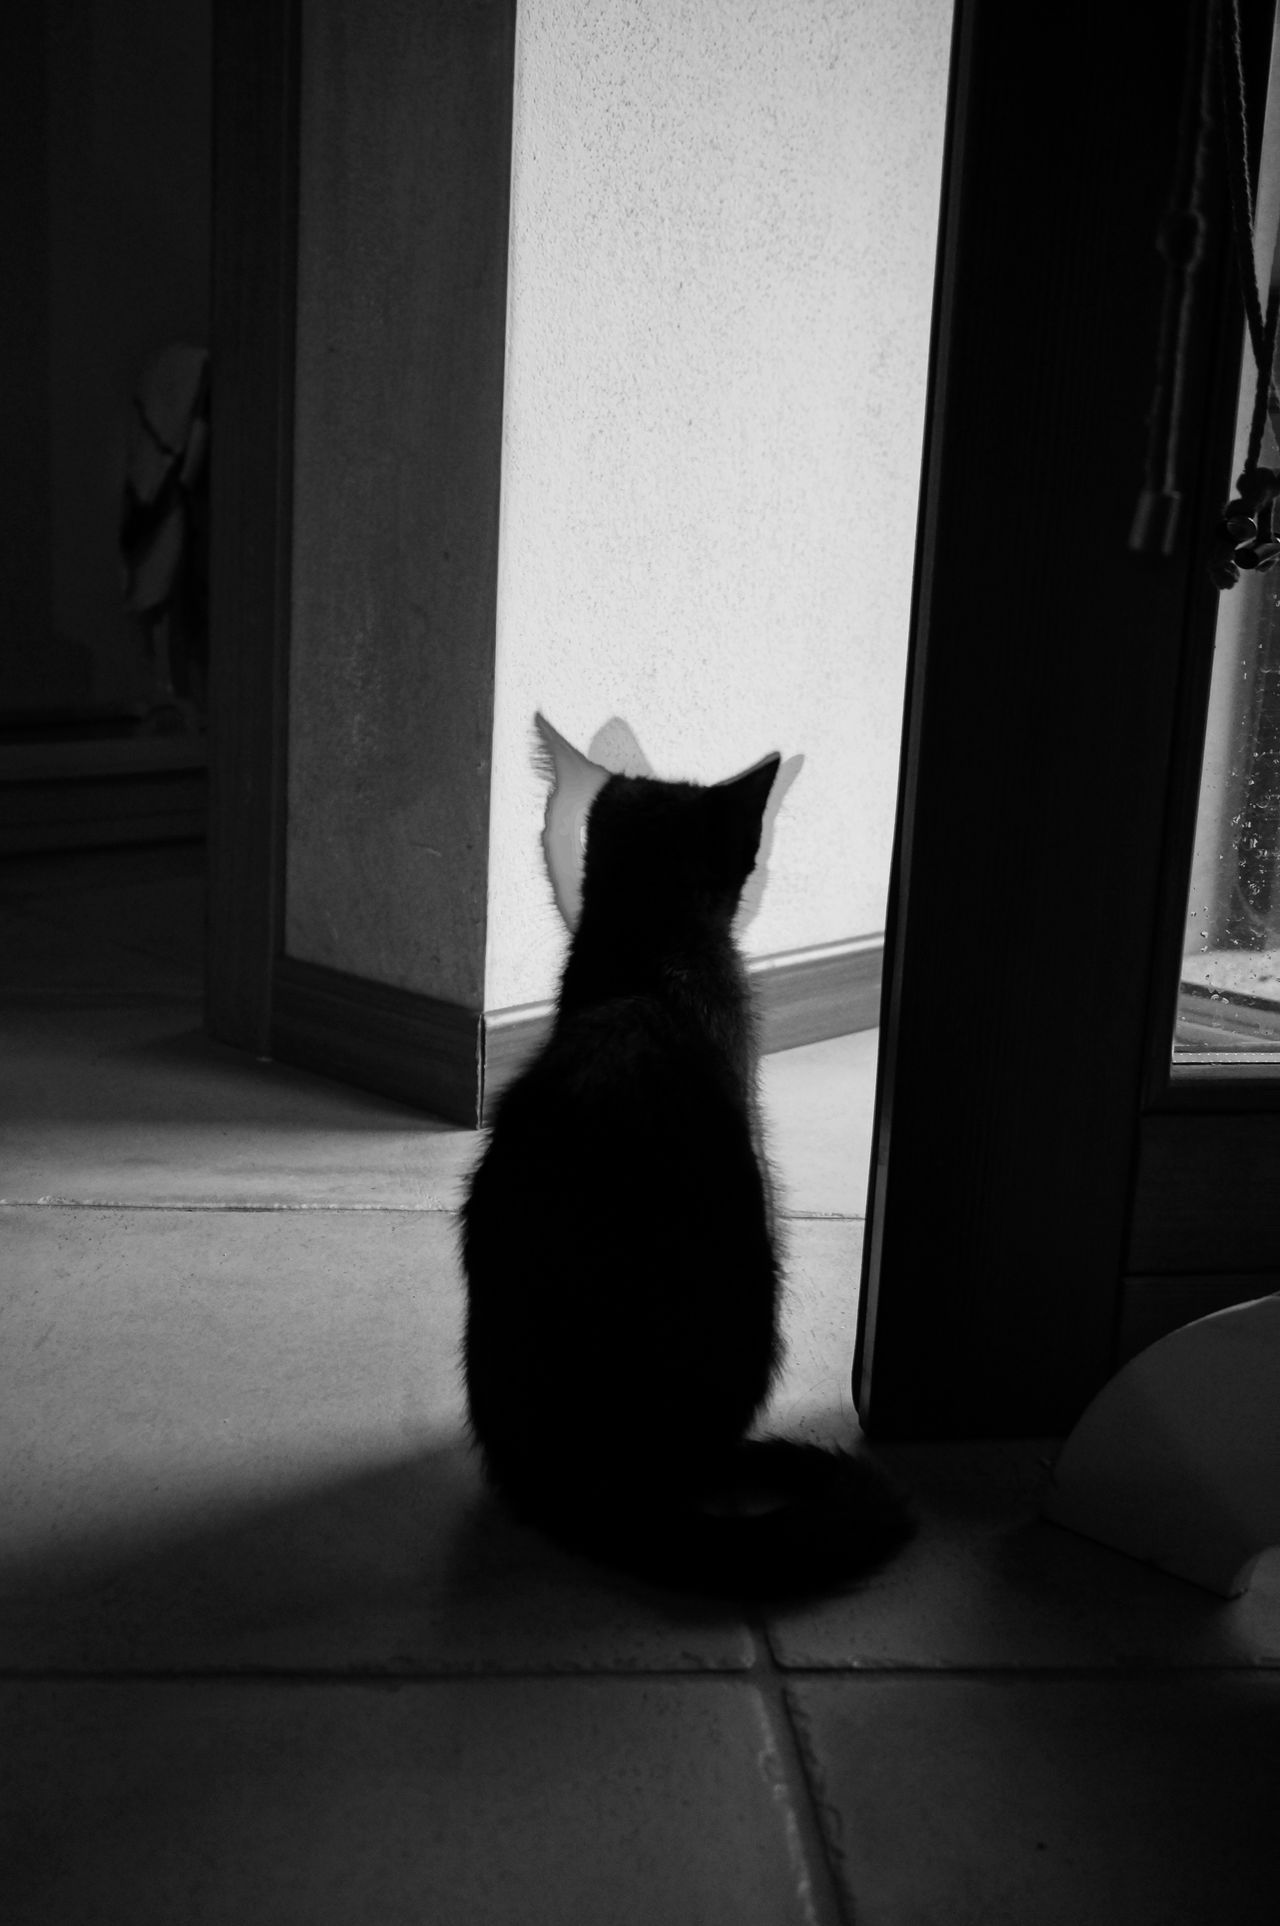 Observe . Domestic Cat Pets Domestic Animals One Animal Sitting Animal Themes Indoors  Door Feline Portrait Full Length Home Interior Black And White Photography Bnwpictures Black & White Photography Light Shadow Cat